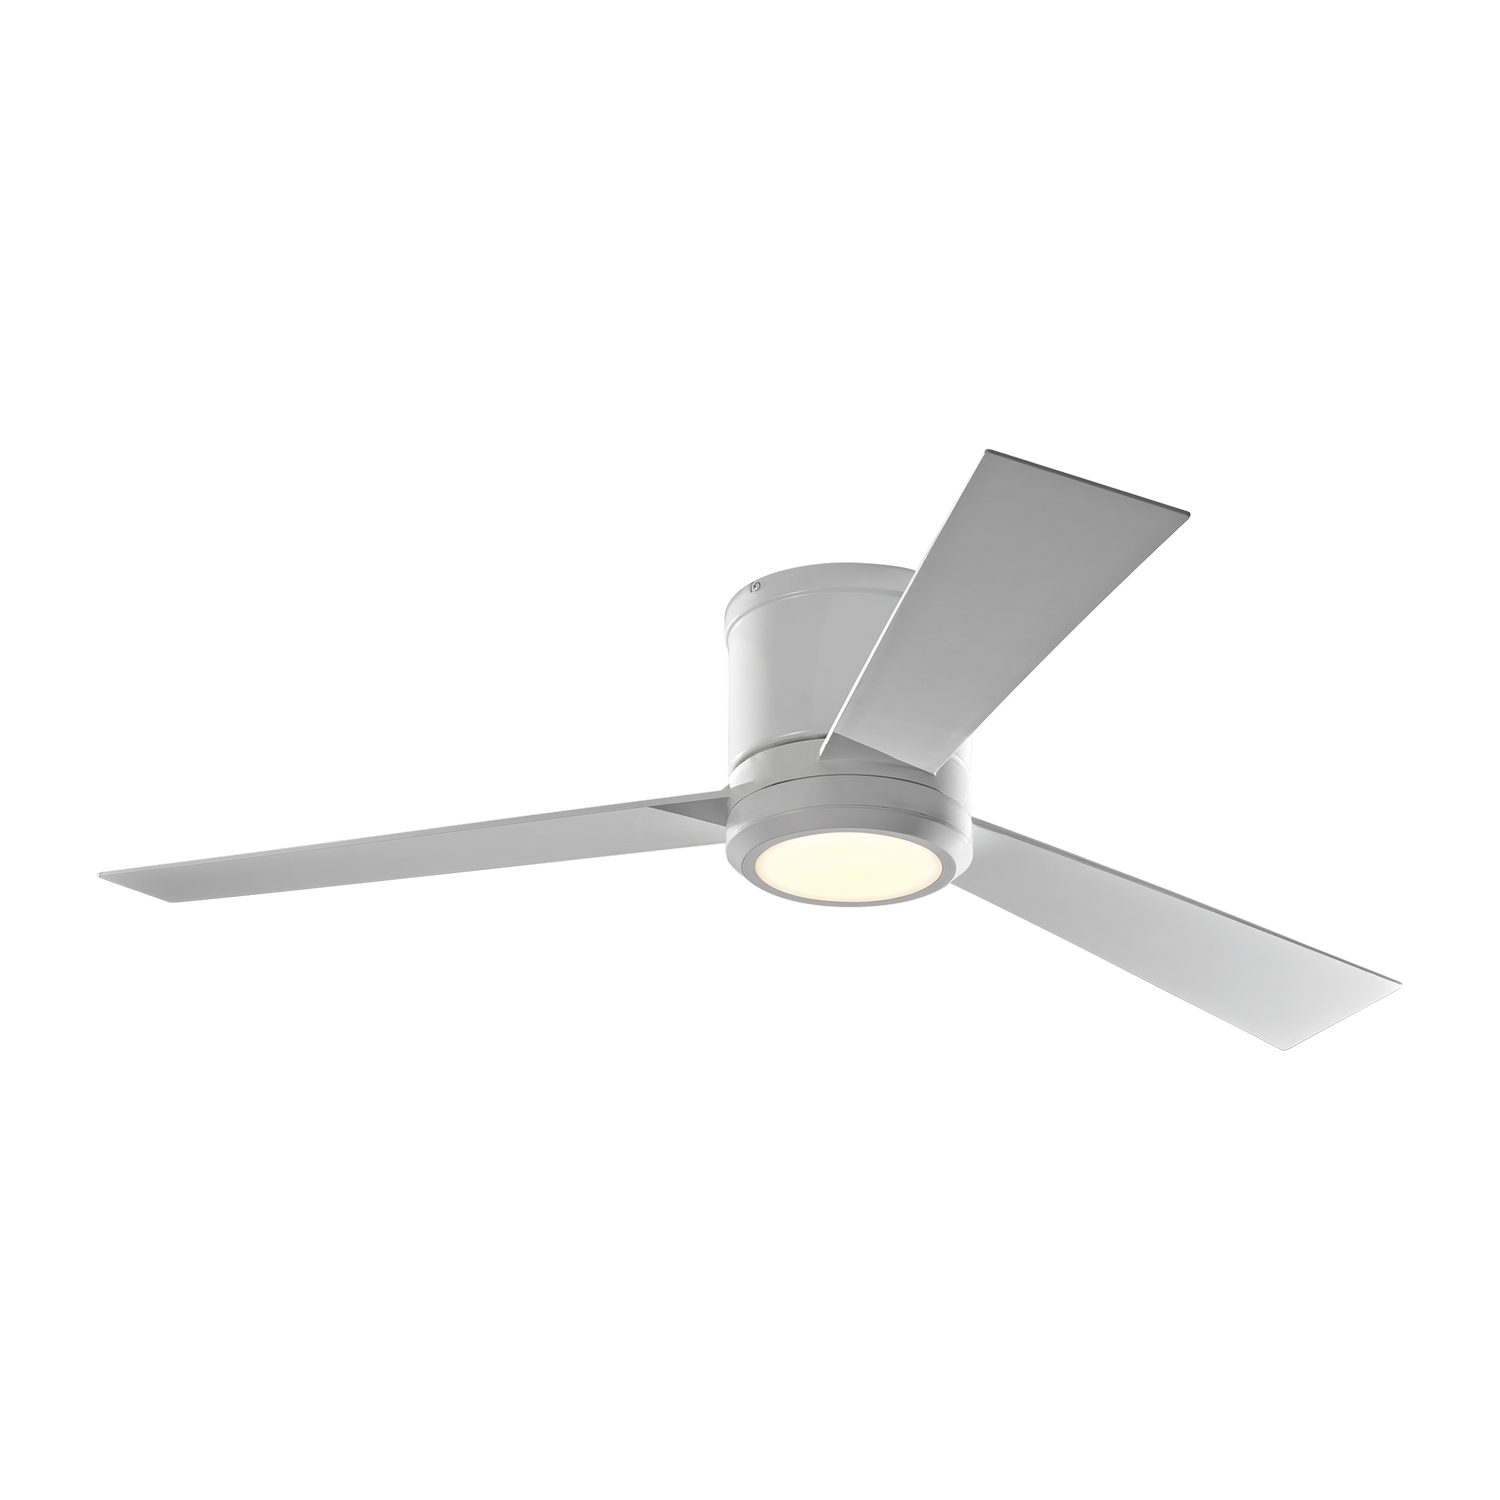 52 inchCeiling Fan from the Clarity collection by Monte Carlo 3CLYR52RZWD V1